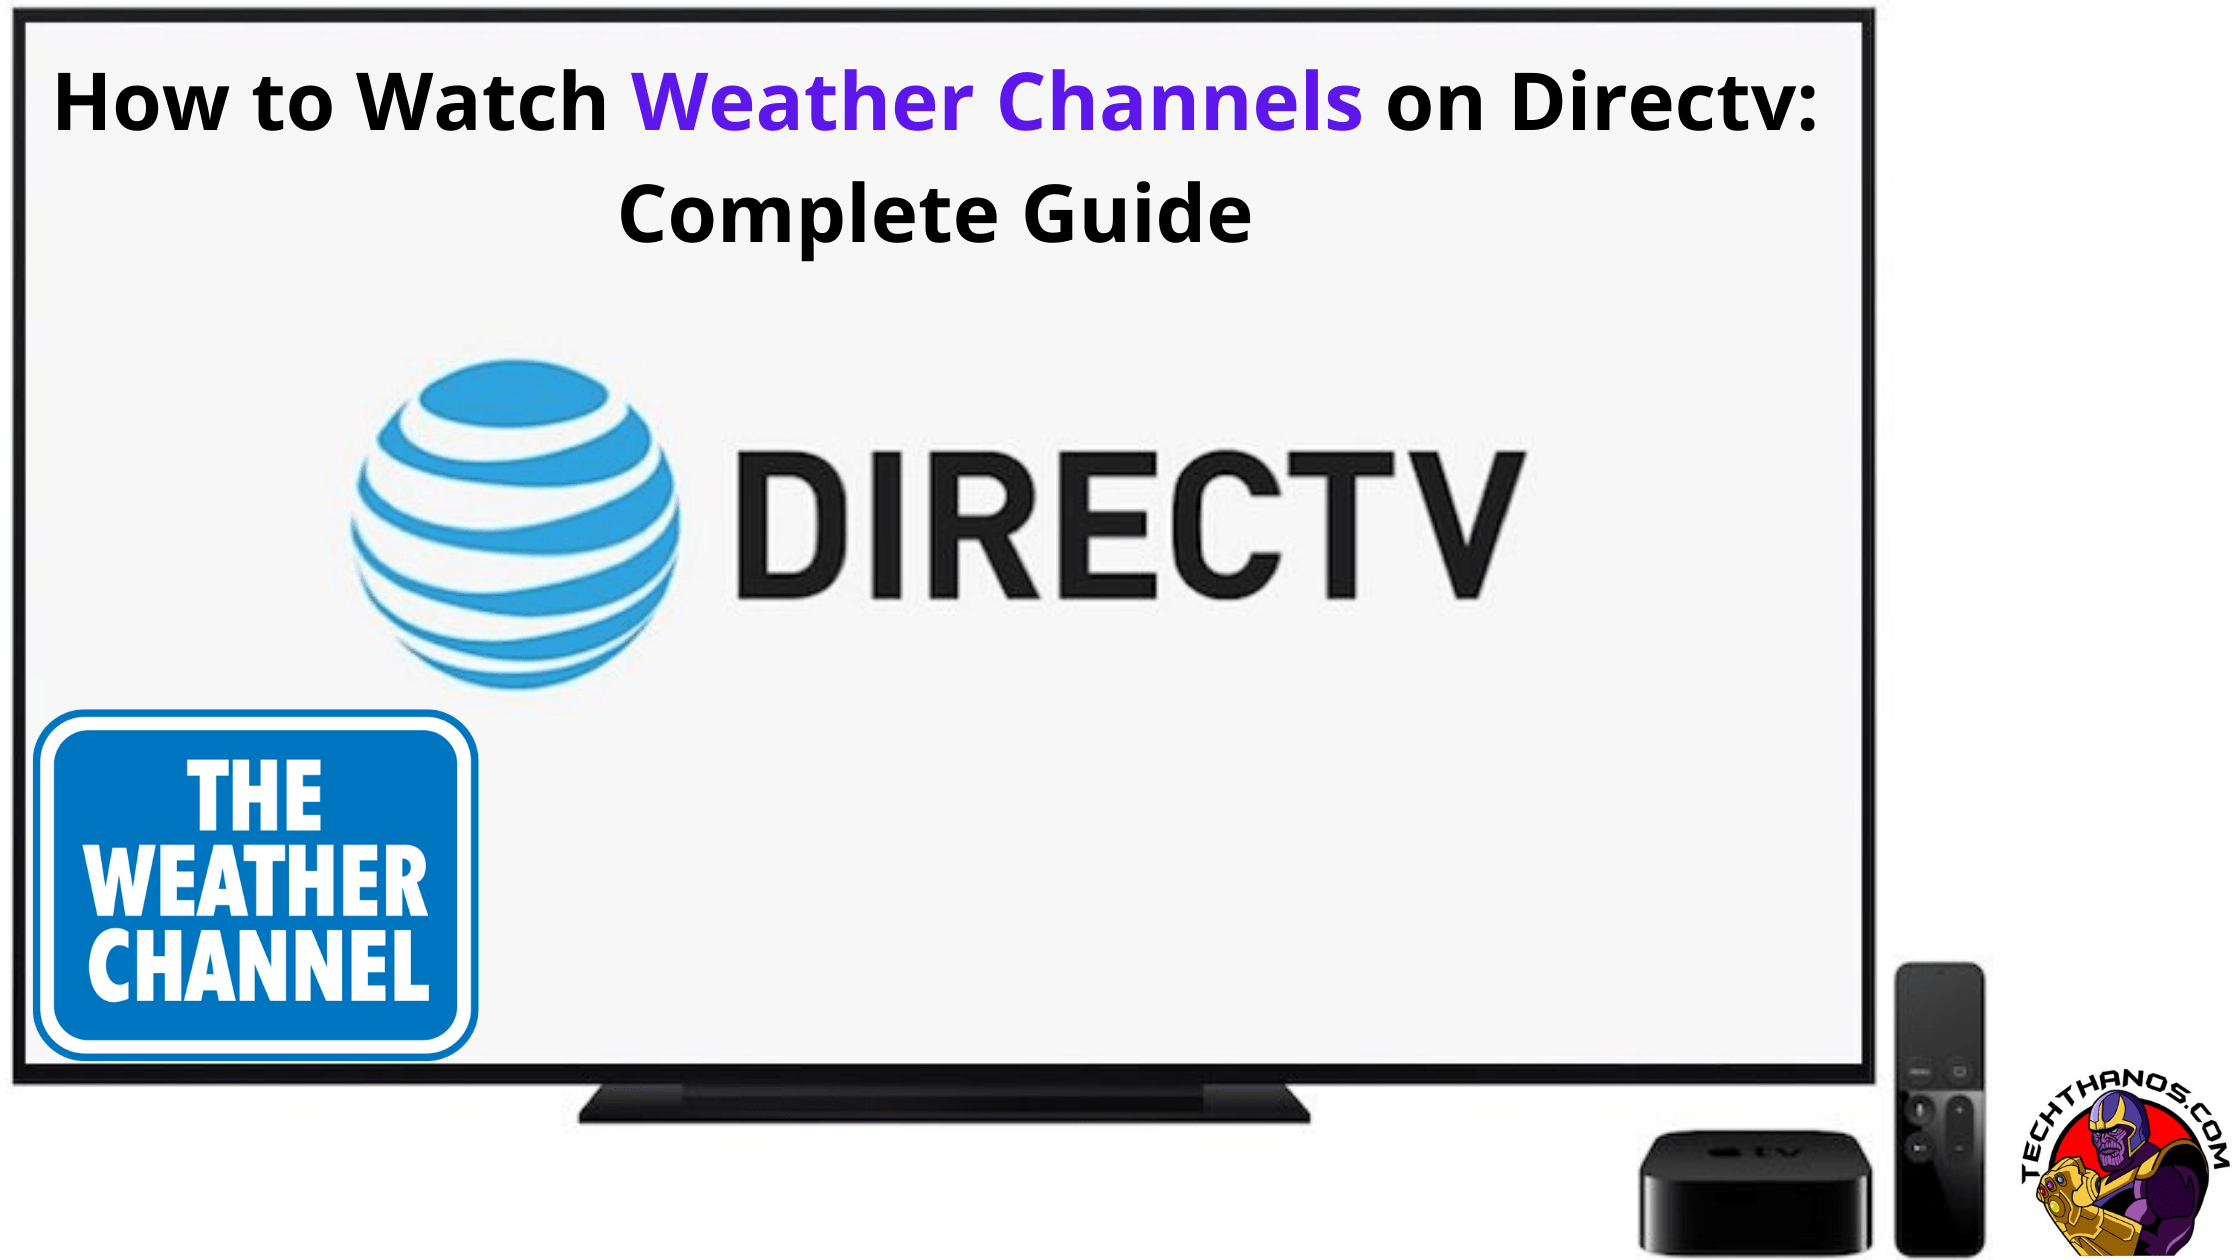 Weather Channels on Directv